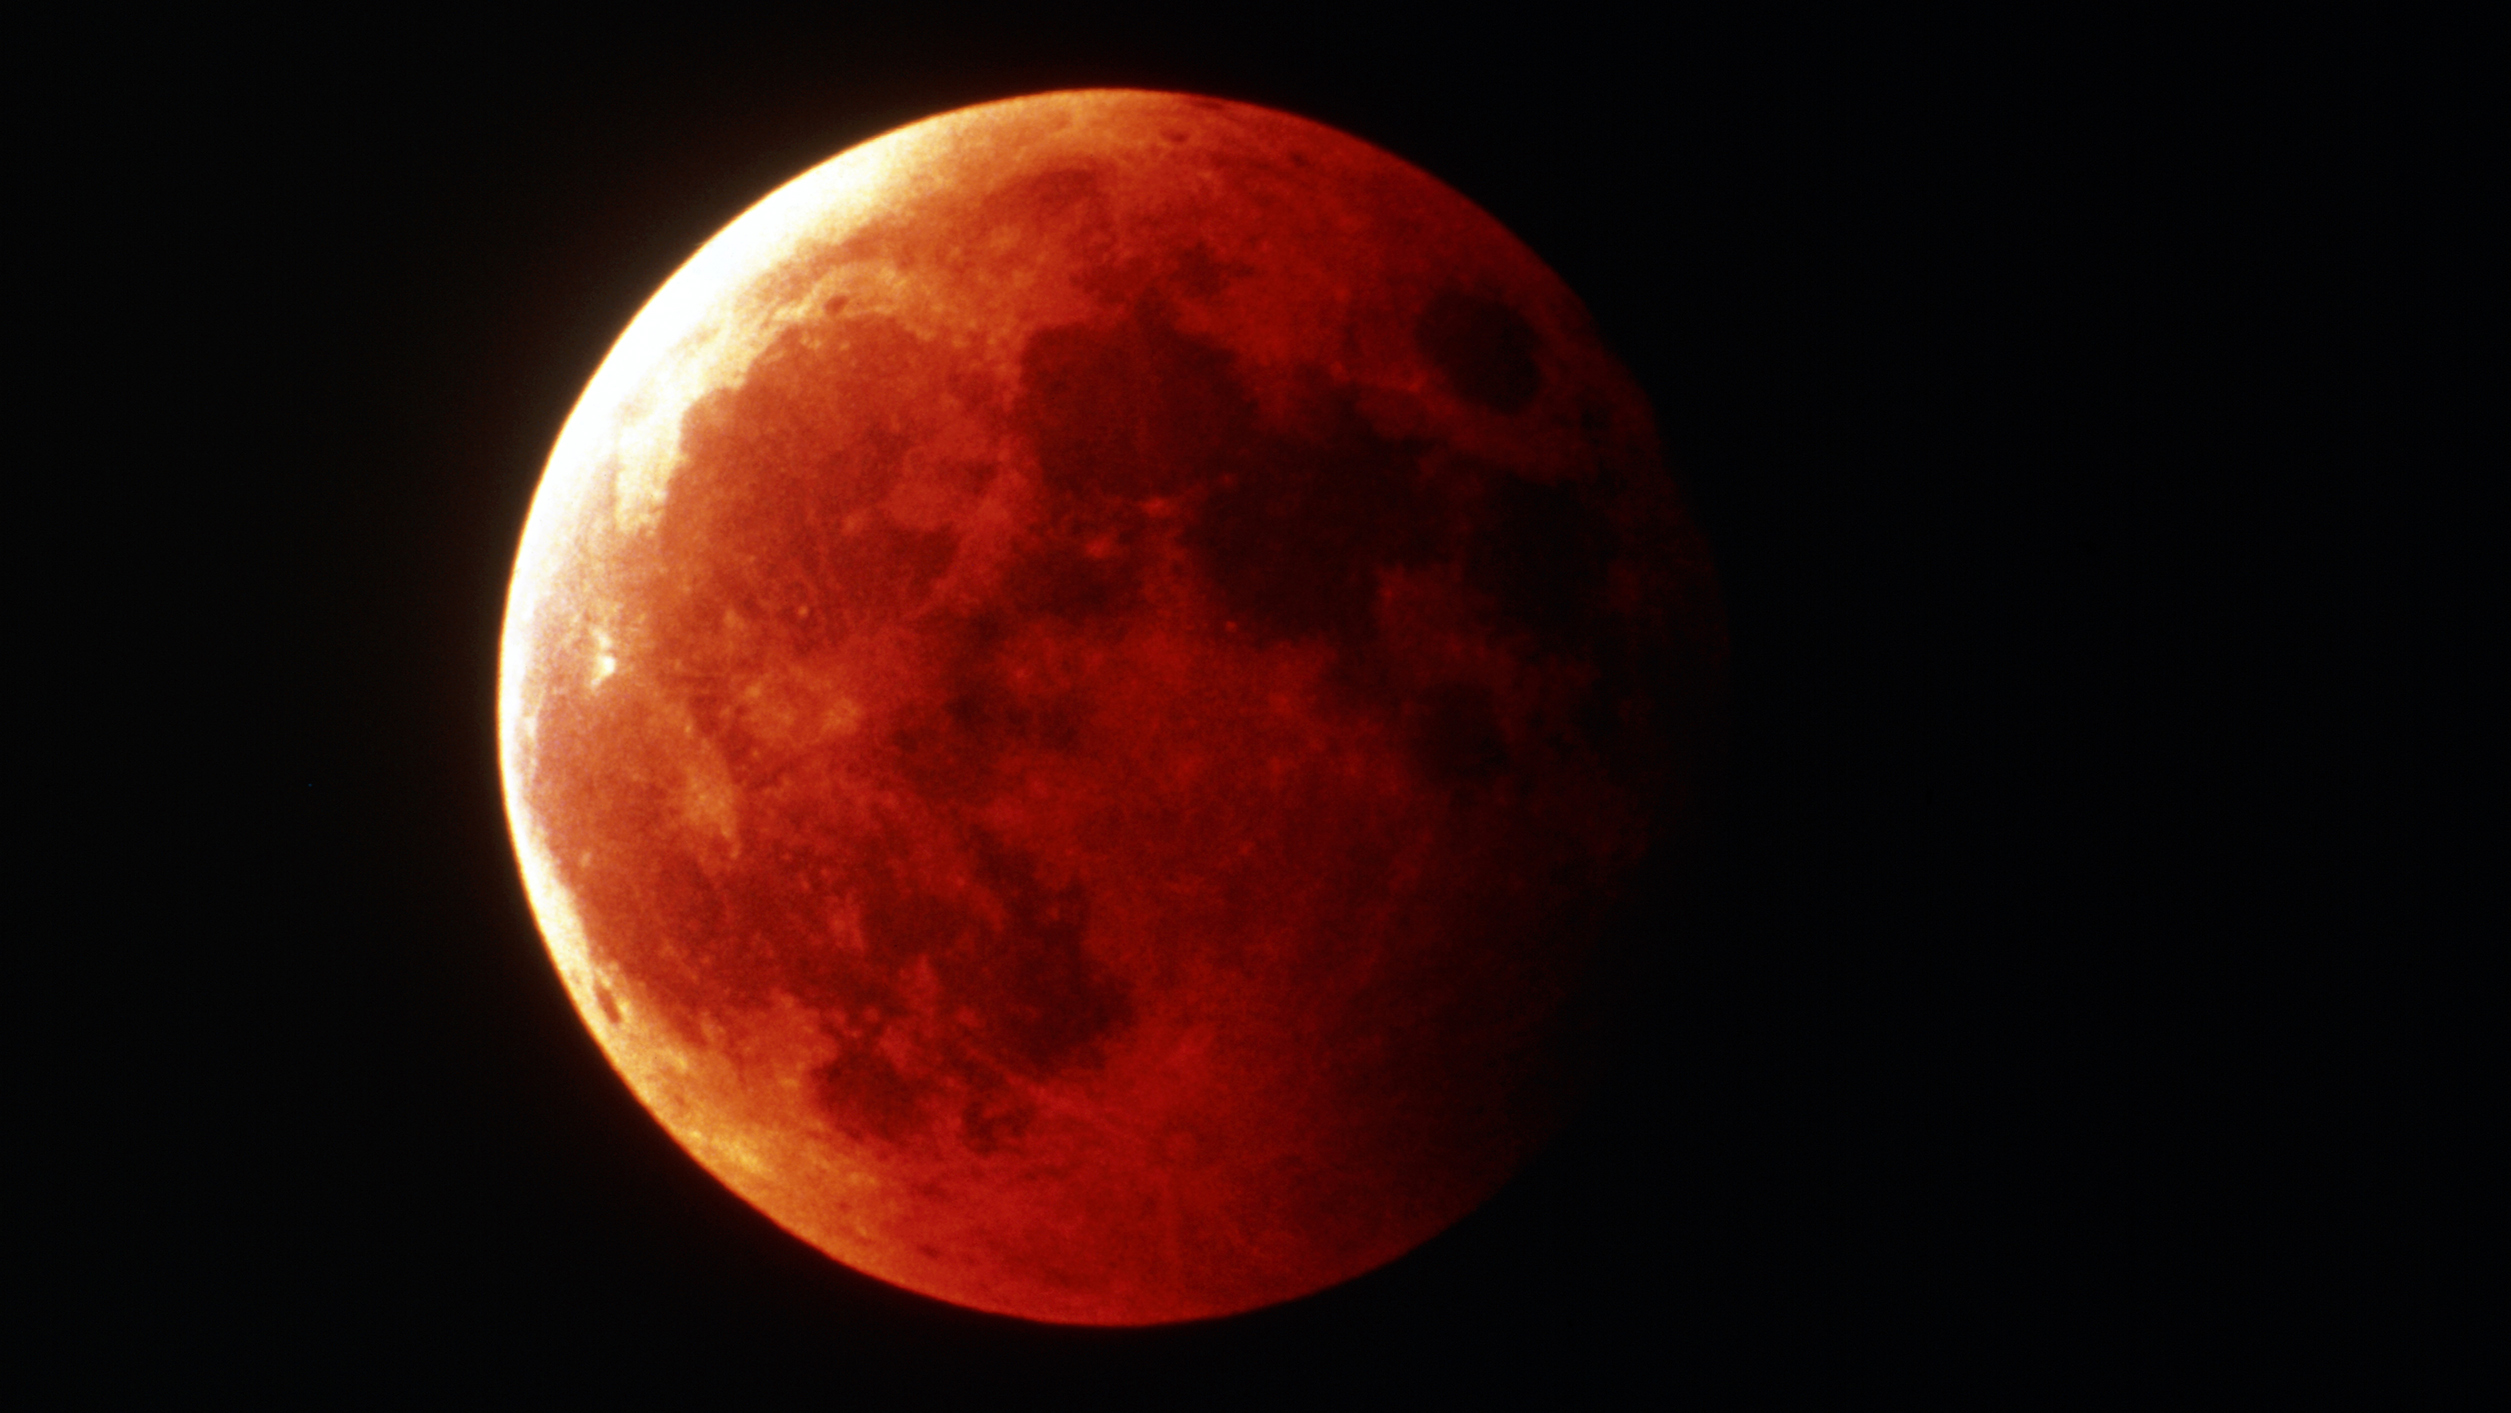 Blood moon in close-up by John Sanford